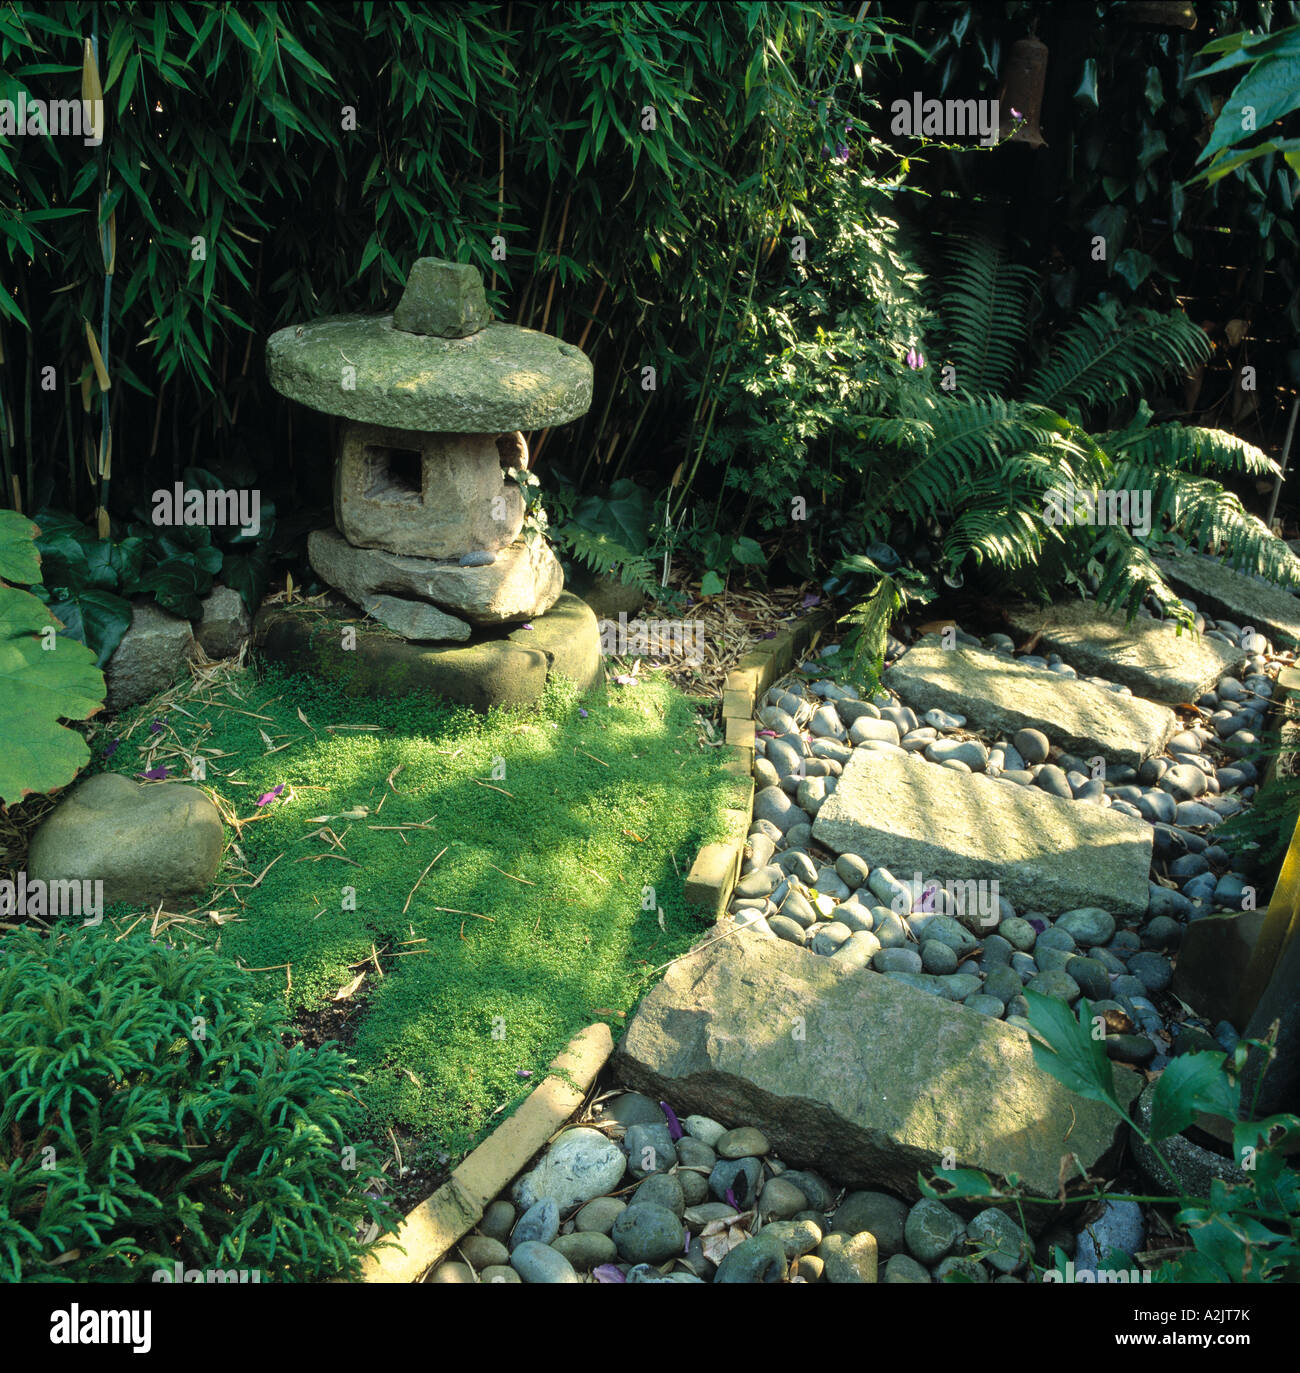 Paved And Pebble Path In Japanese Style Garden With Oriental Stone Lantern  Sculpture